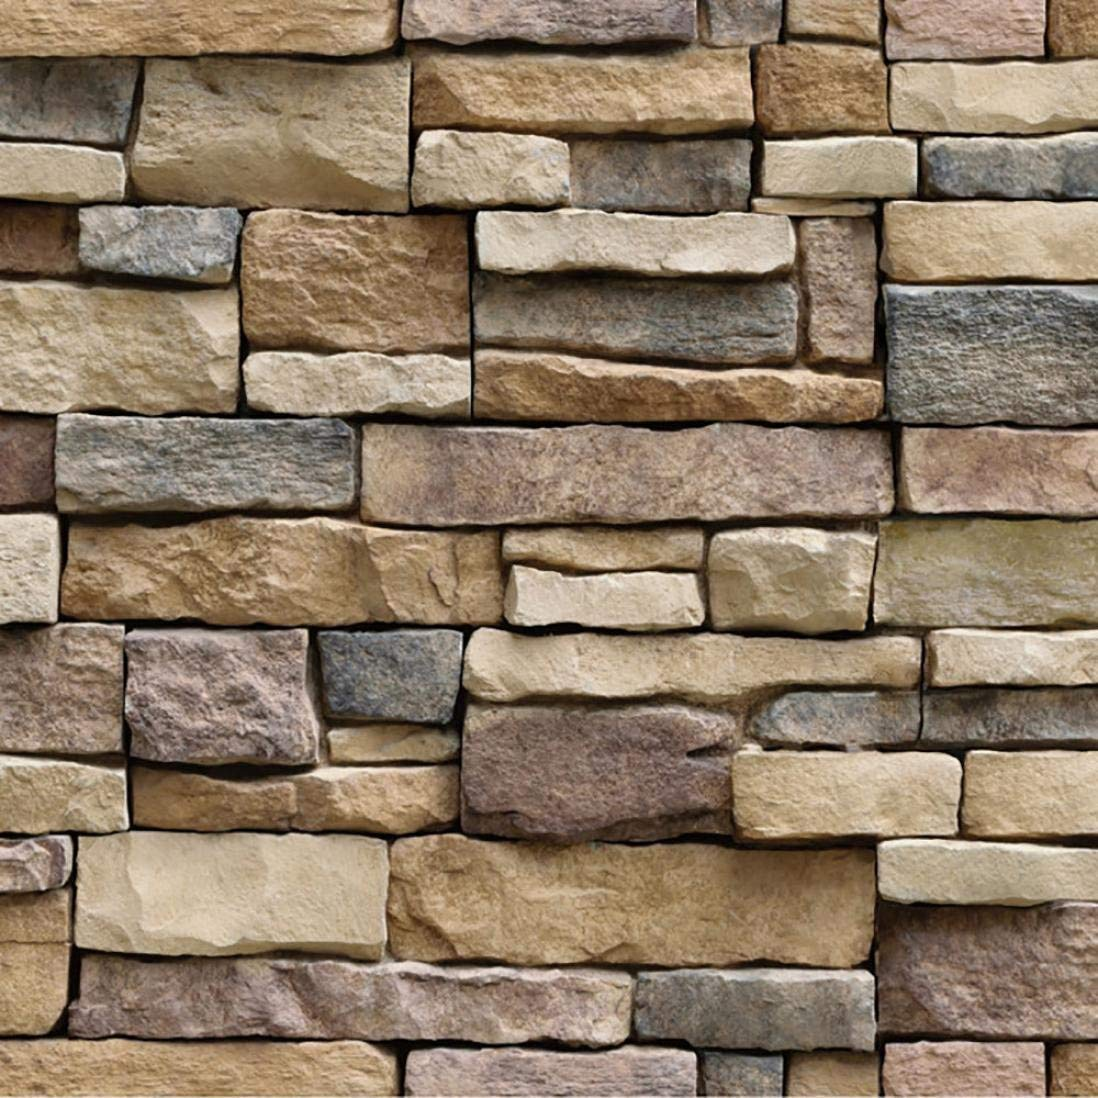 Vimoon Stone Wallpaper, PVC 3D Effect Blocks Peel and Stick Wallpaper for Home Decoration (17.71'' Wide x 393'' Long) by Vimoon